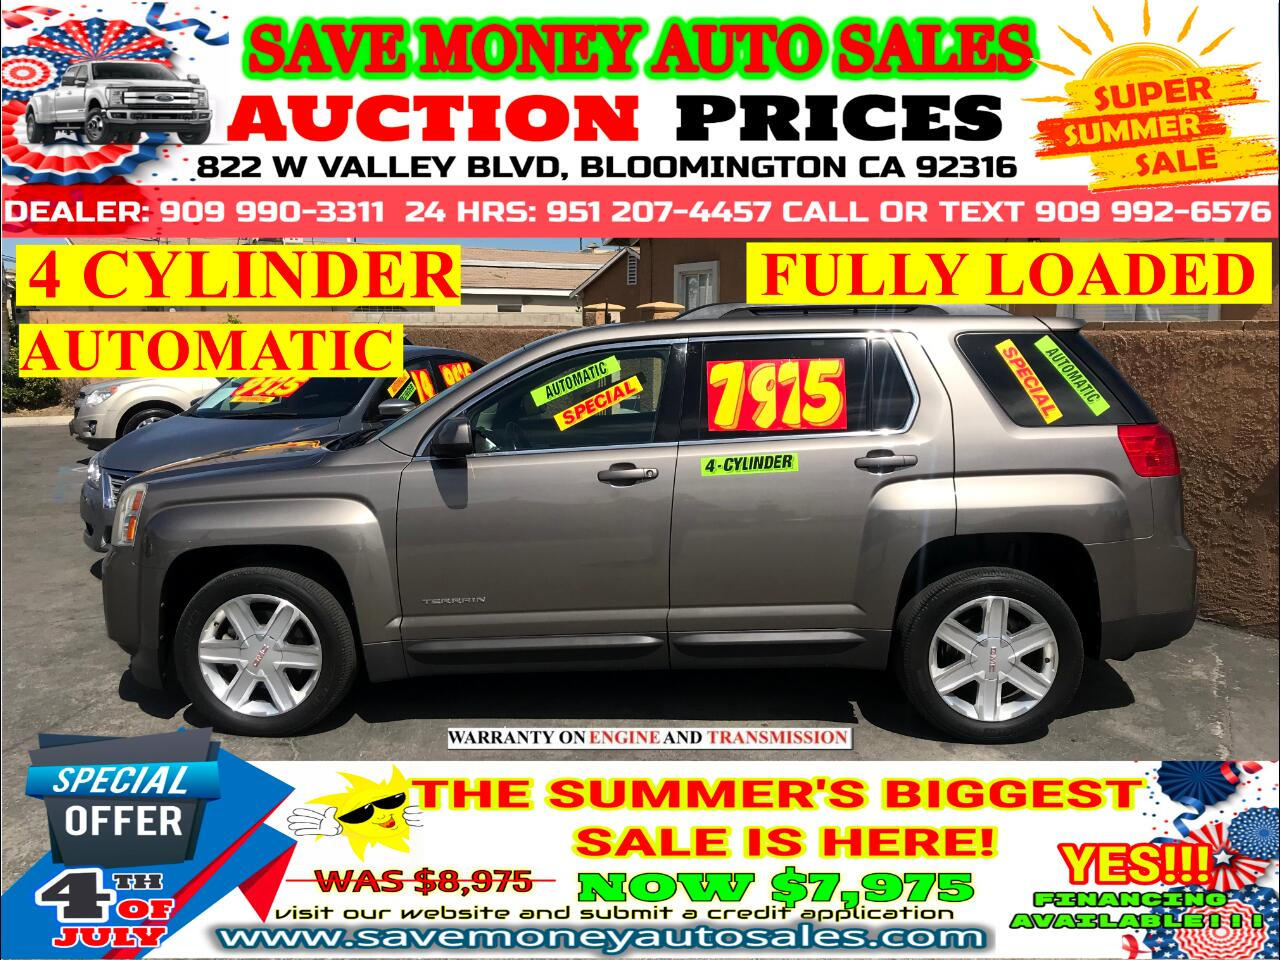 2010 GMC Terrain FULLY LOADED> 4 CYLINDER> EXTRA CLEAN